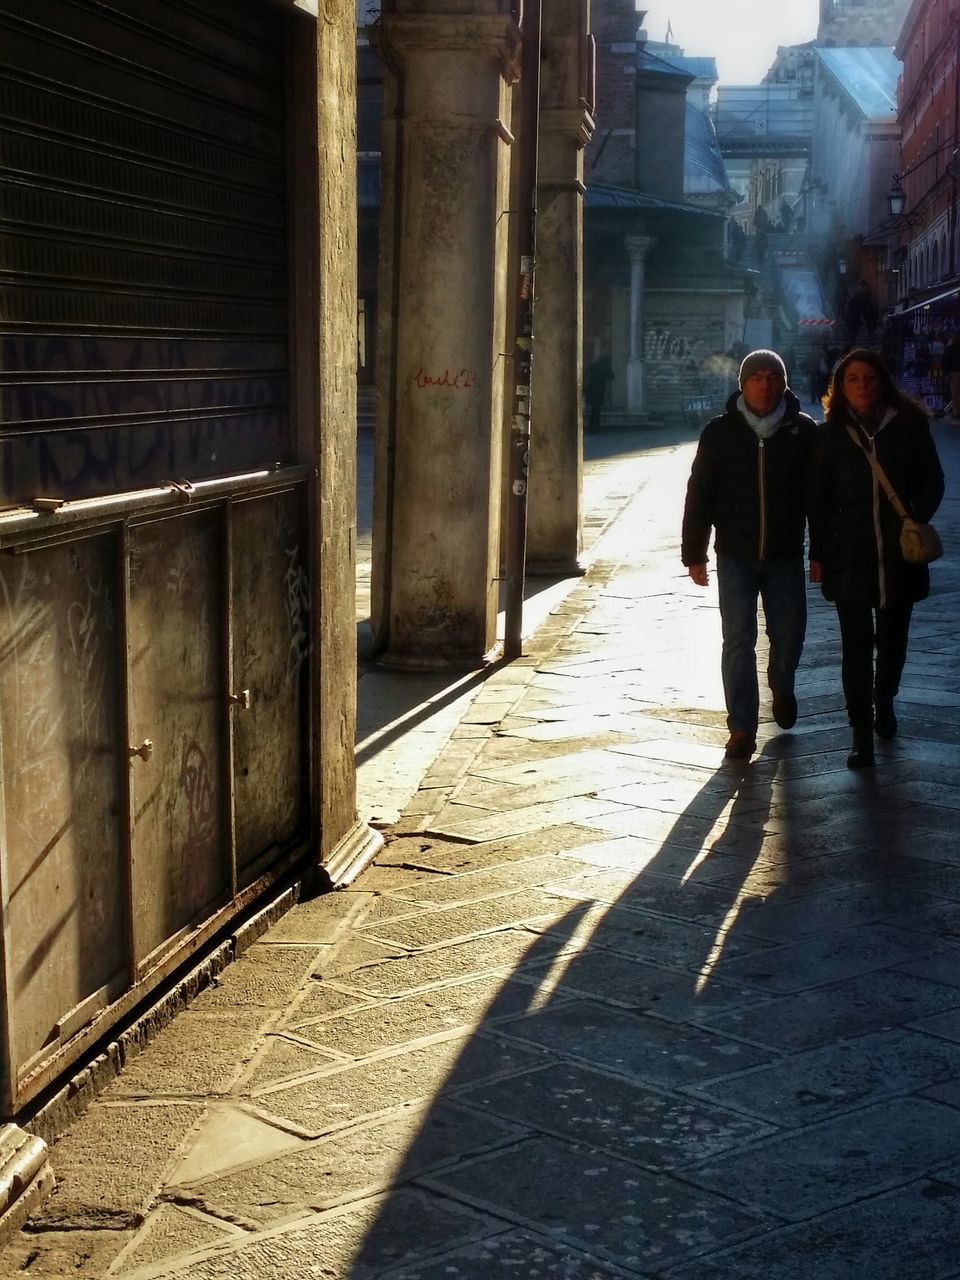 built structure, walking, architecture, sunlight, two people, real people, building exterior, full length, shadow, men, day, women, togetherness, outdoors, adult, people